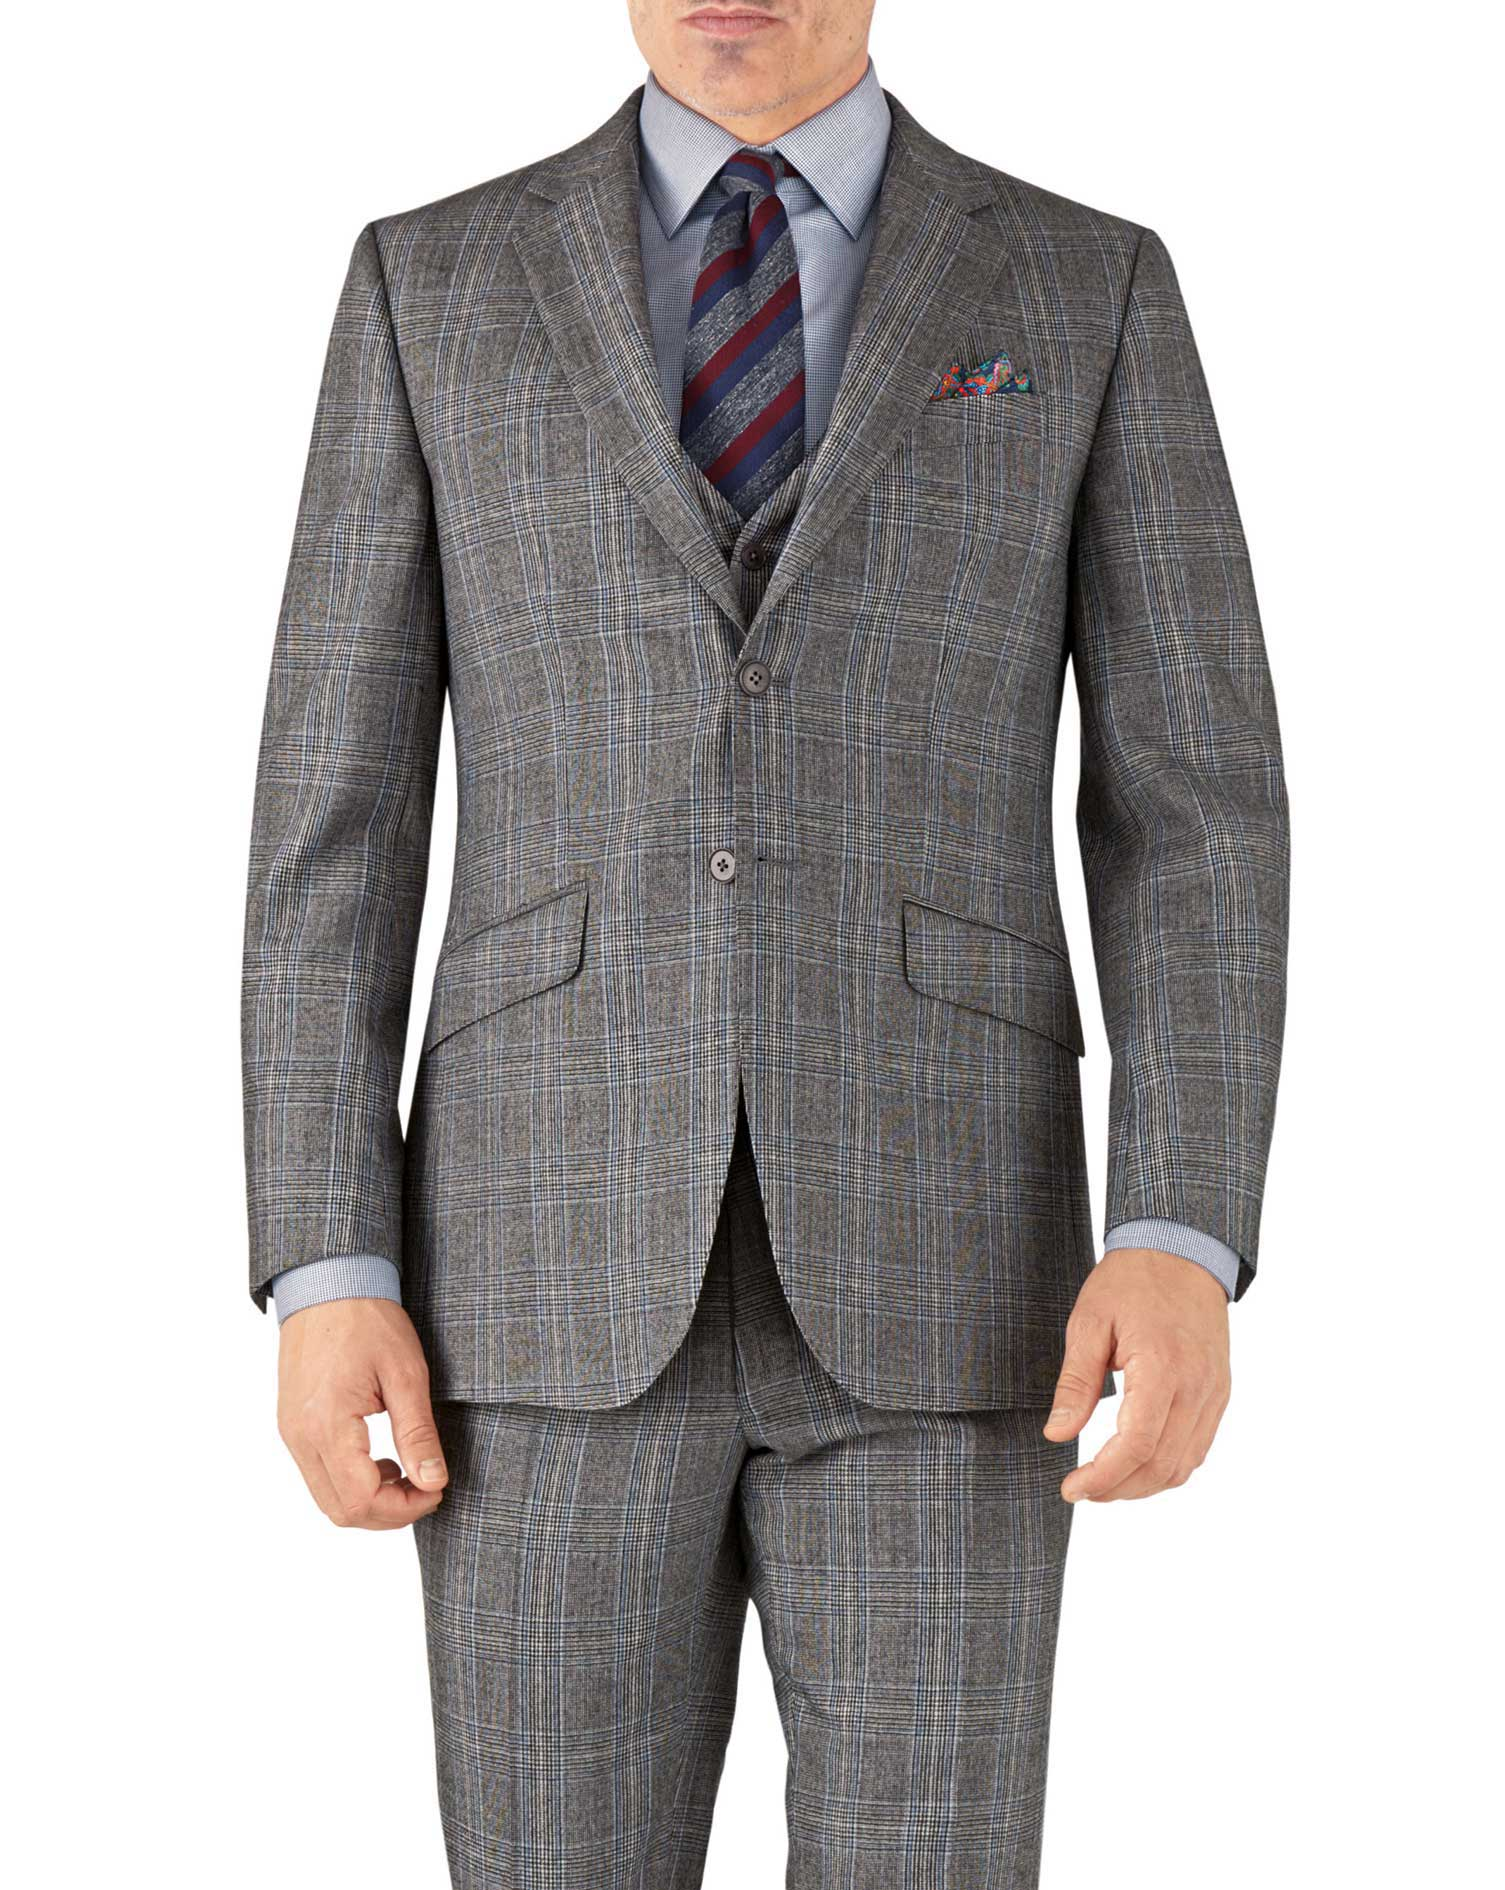 Silver Prince Of Wales Slim Fit Flannel Business Suit Wool Jacket Size 42 Long by Charles Tyrwhitt